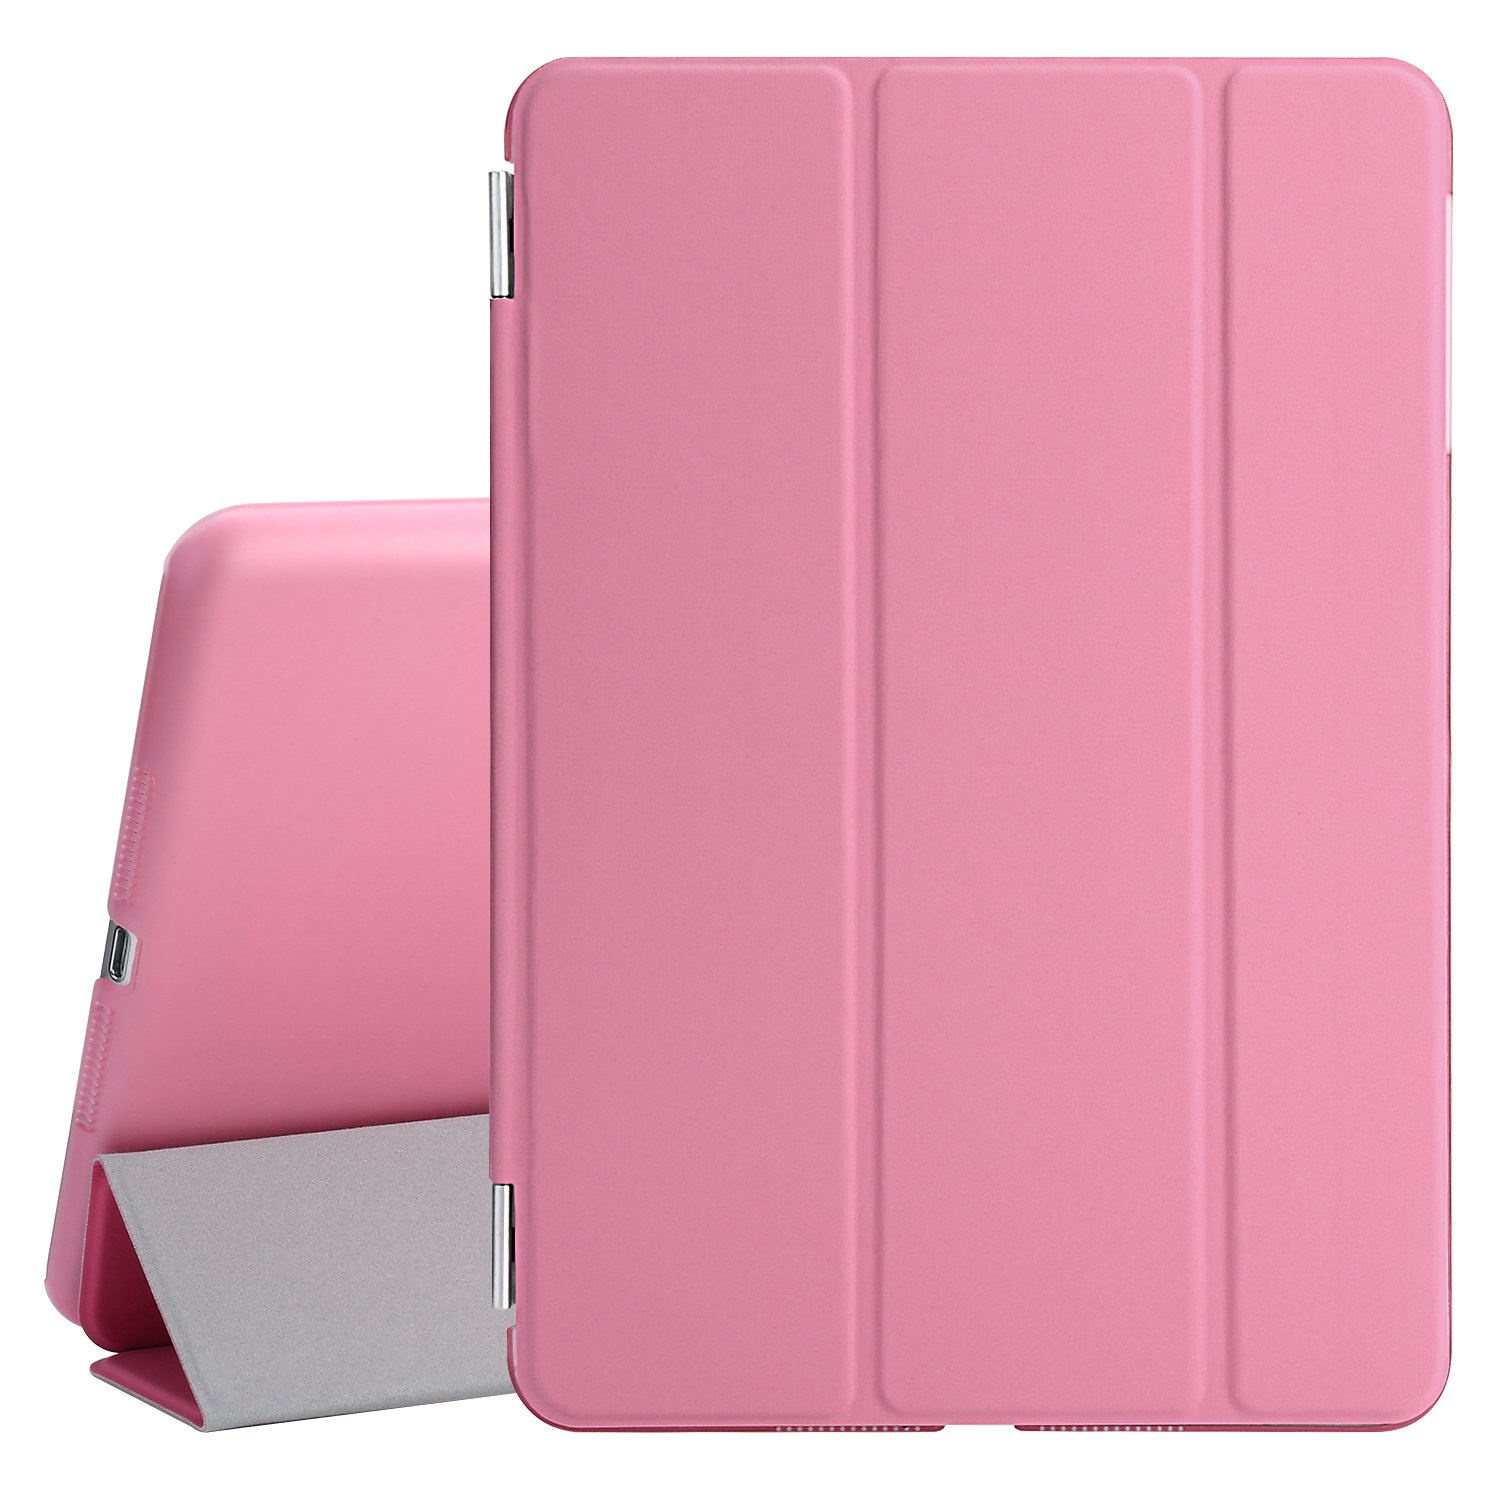 Screen Protector Cleaning Cloth PT2604 Pink Besdata Ultra Thin Magnetic Smart Cover /& Back Case For Apple iPad 2 // iPad 3 // iPad 4 Stylus